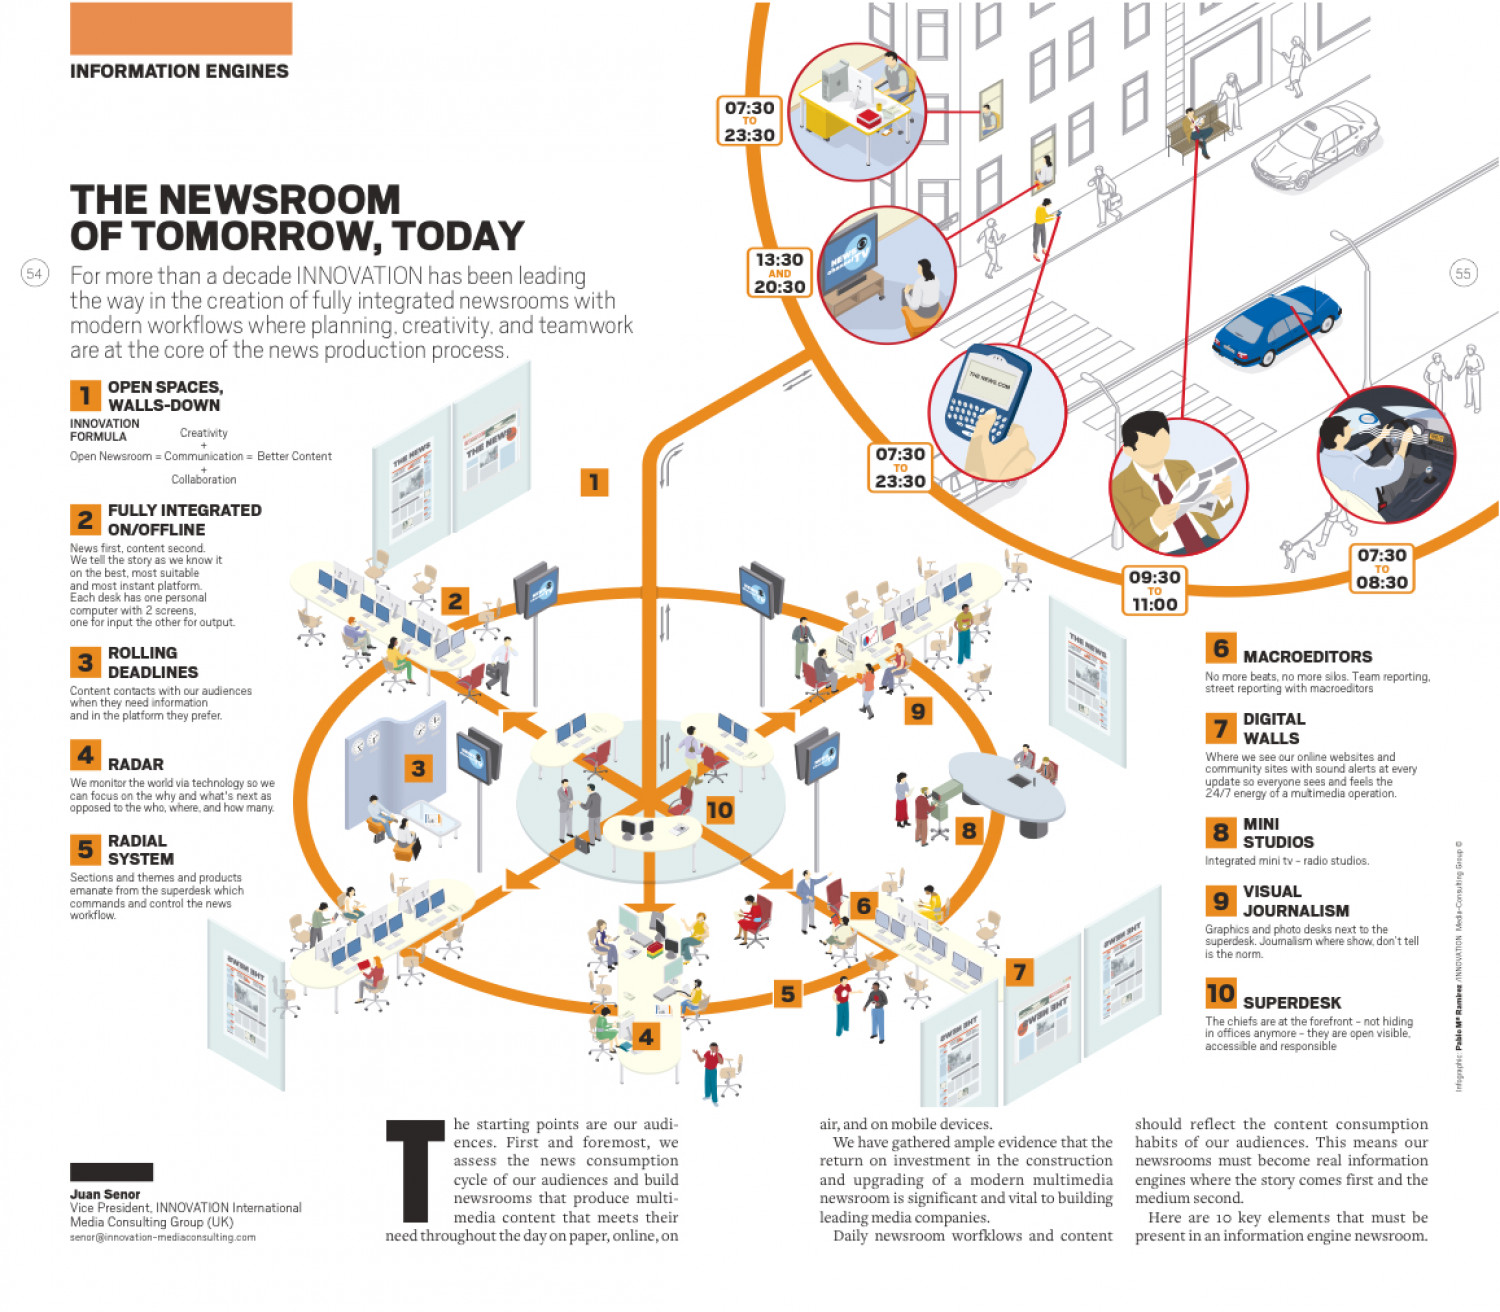 2007 INNOVATIONS IN NEWSPAPERS GLOBAL REPORT  Infographic